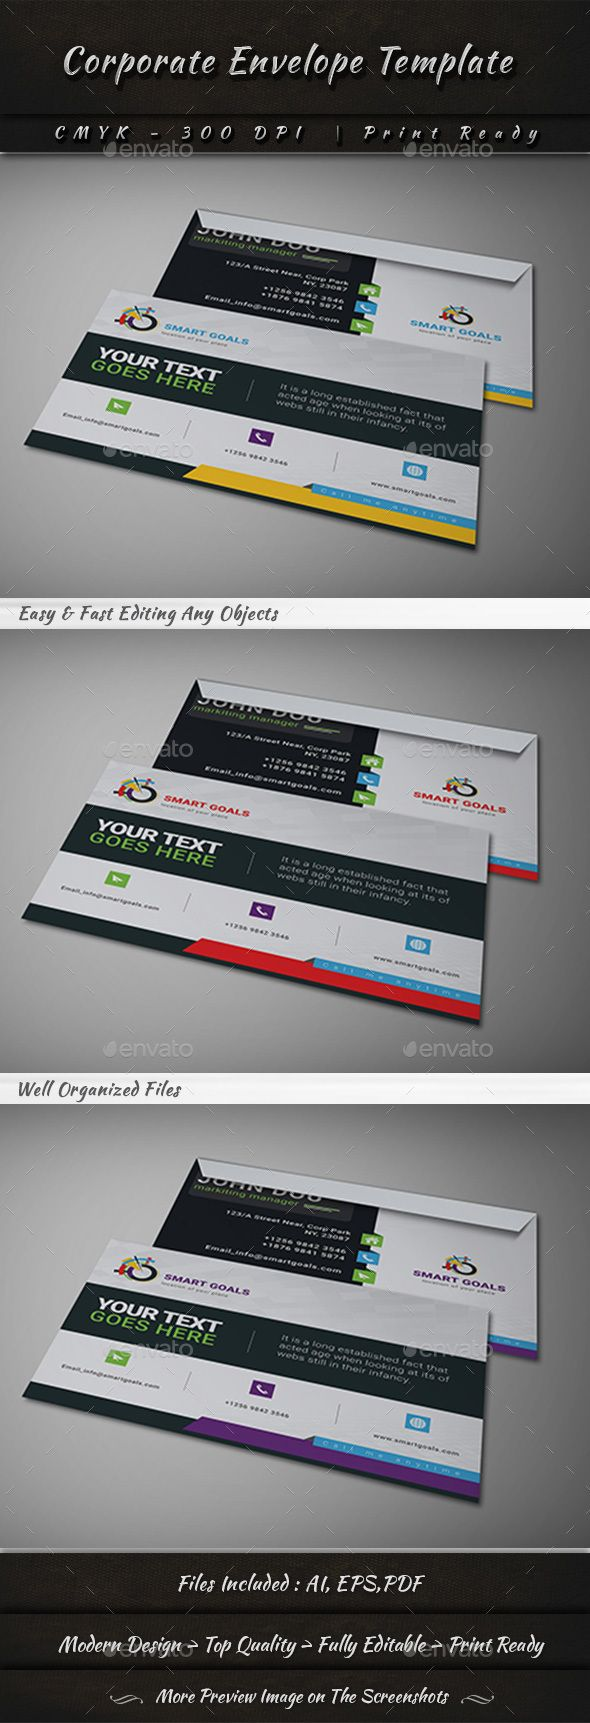 Blank Letter Envelope Business Cards And Cd  Cd Design